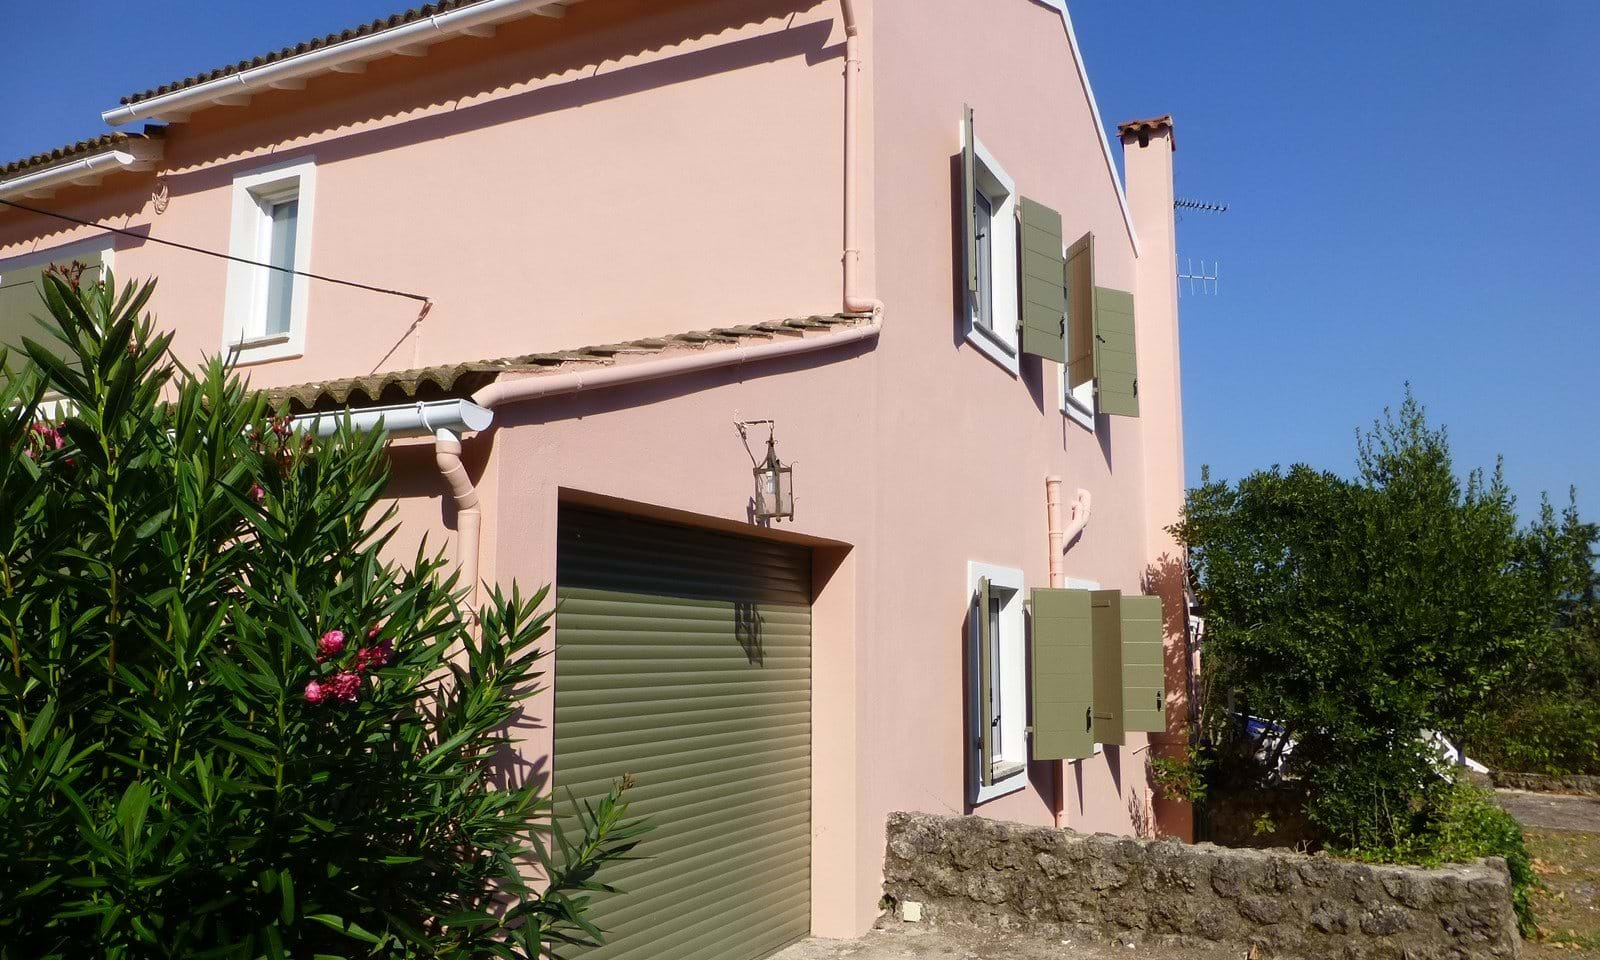 Central Corfu houses for sale